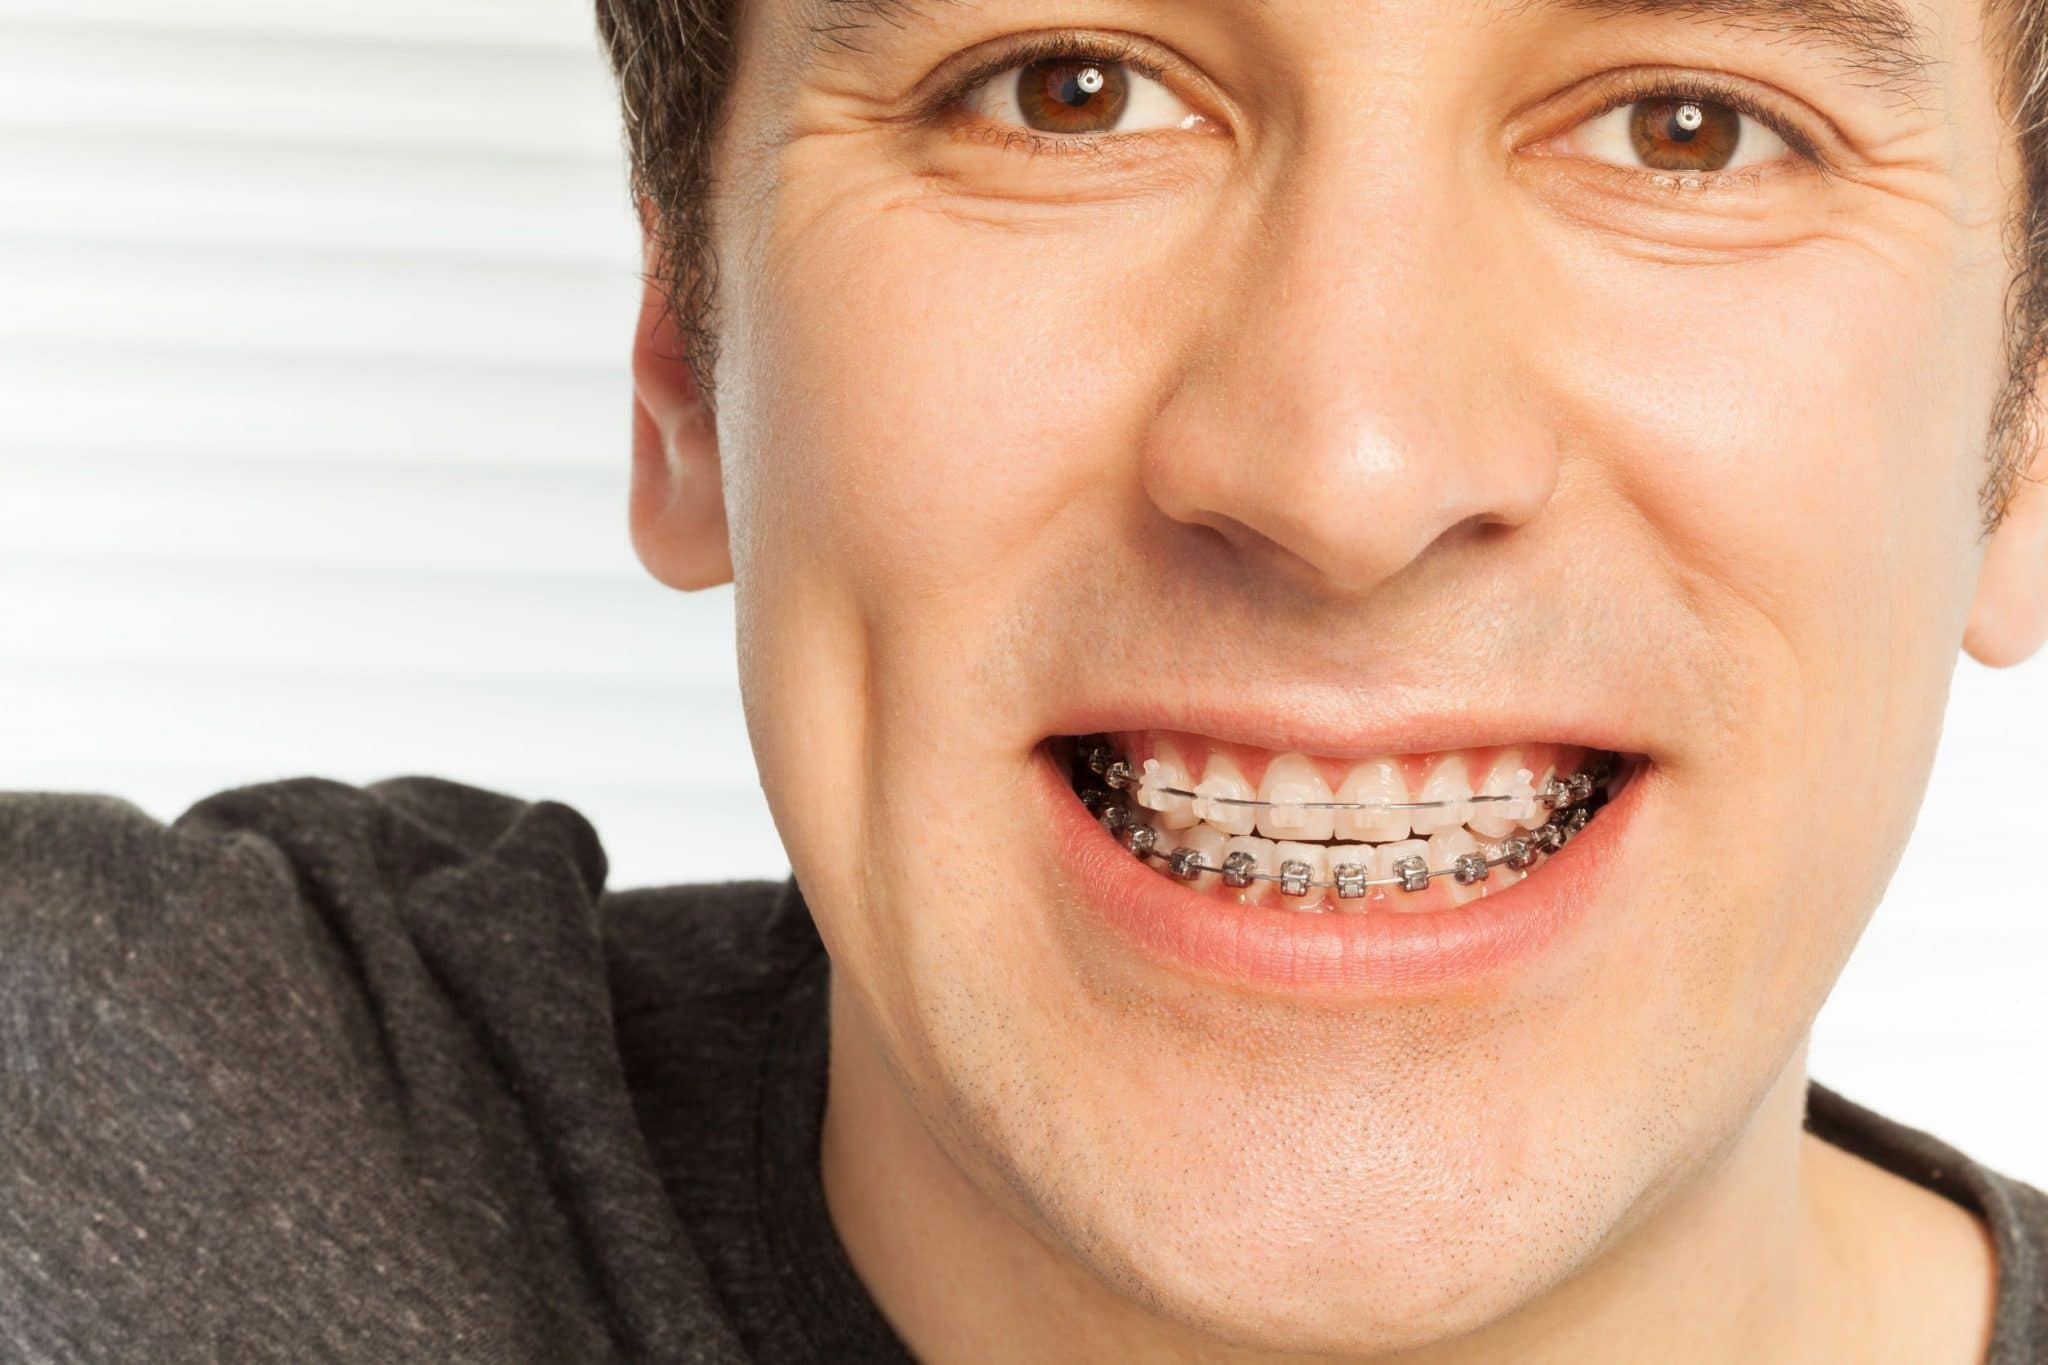 What Are the Advantages of Orthodontic Treatment?